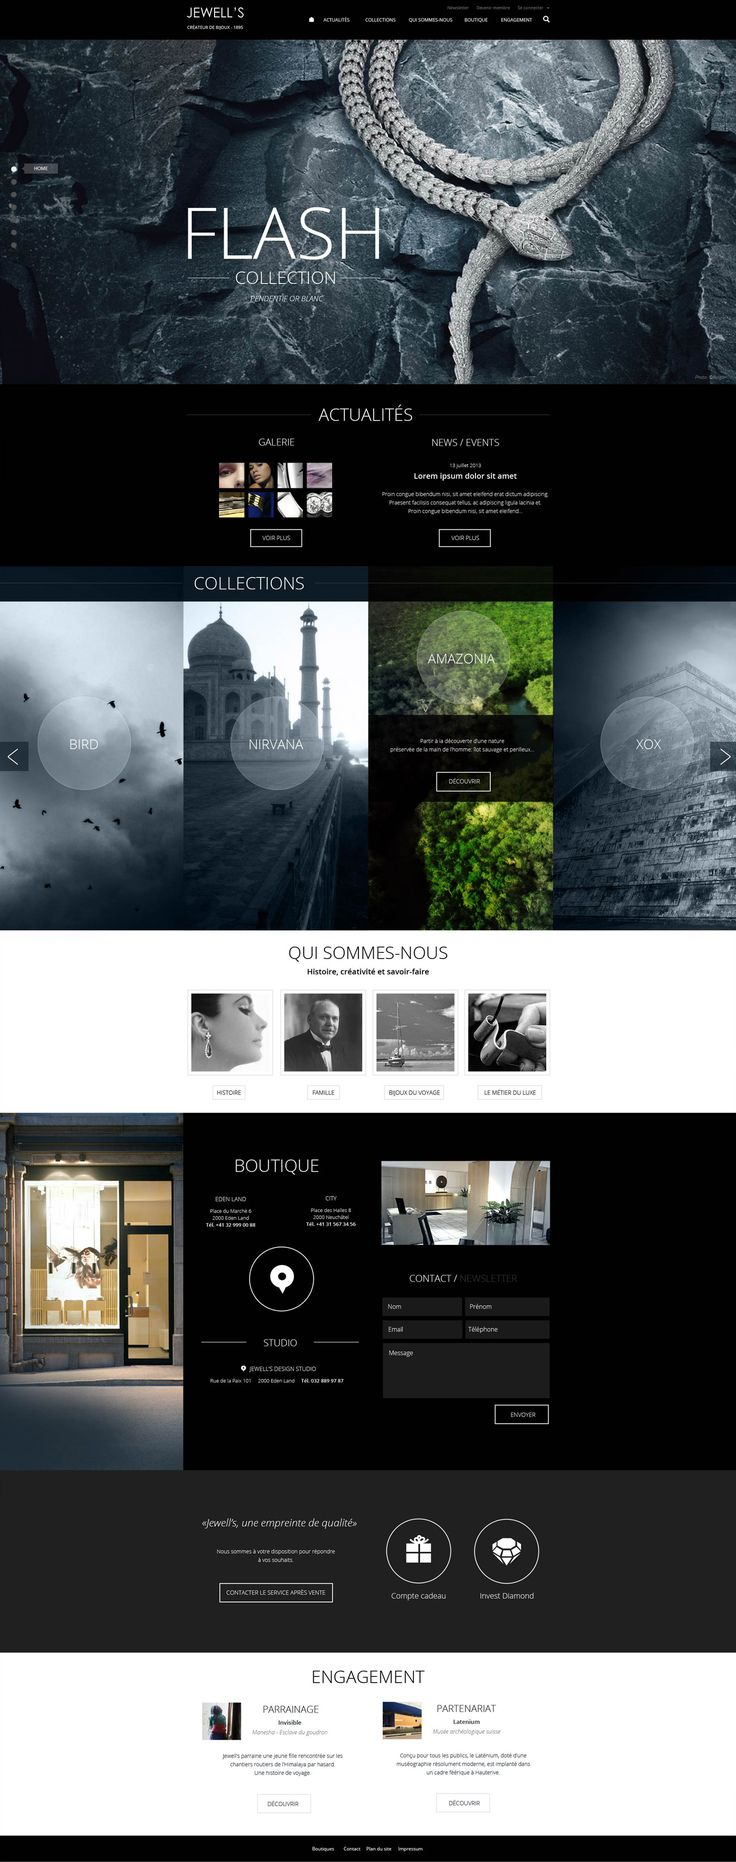 Cool Web Design, FLASH Collection. #webdesign #webdevelopment [http://www.pinterest.com/alfredchong/]